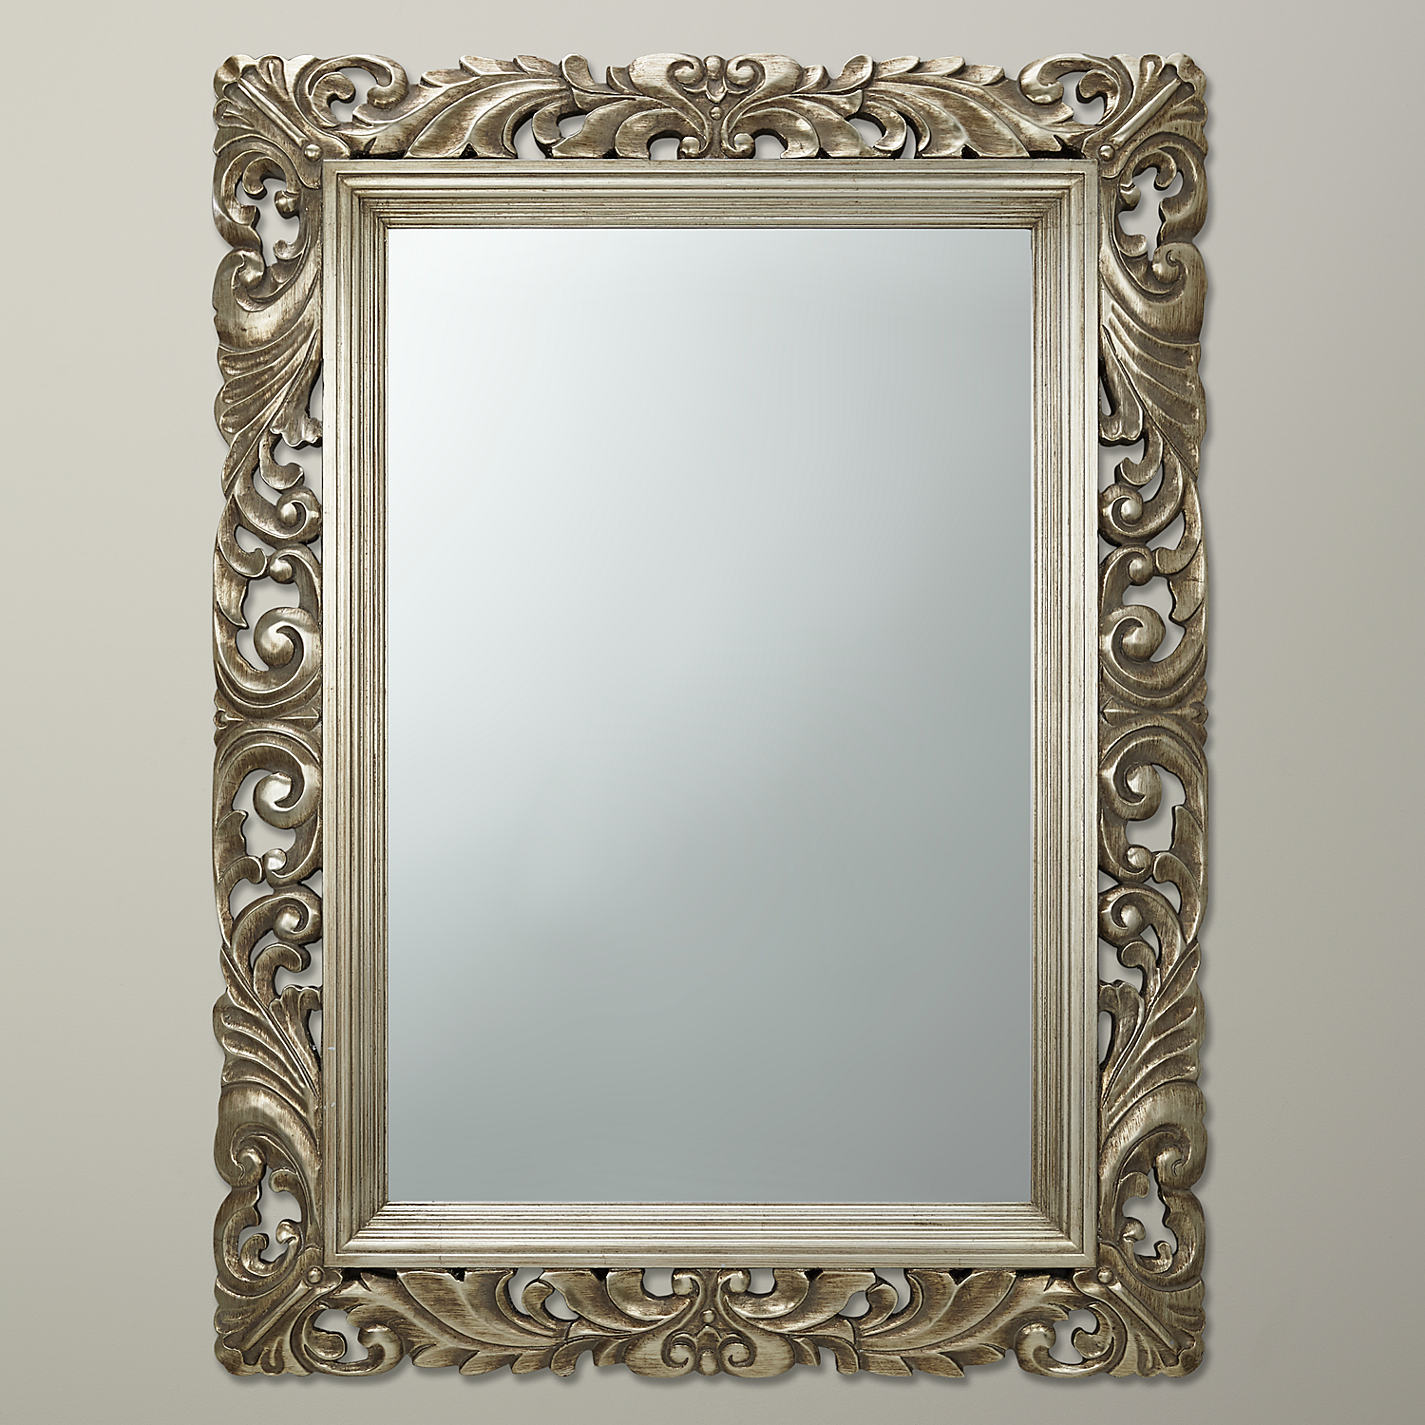 Full length wavy wall mirror candle holder mirror wall for Full size wall mirror